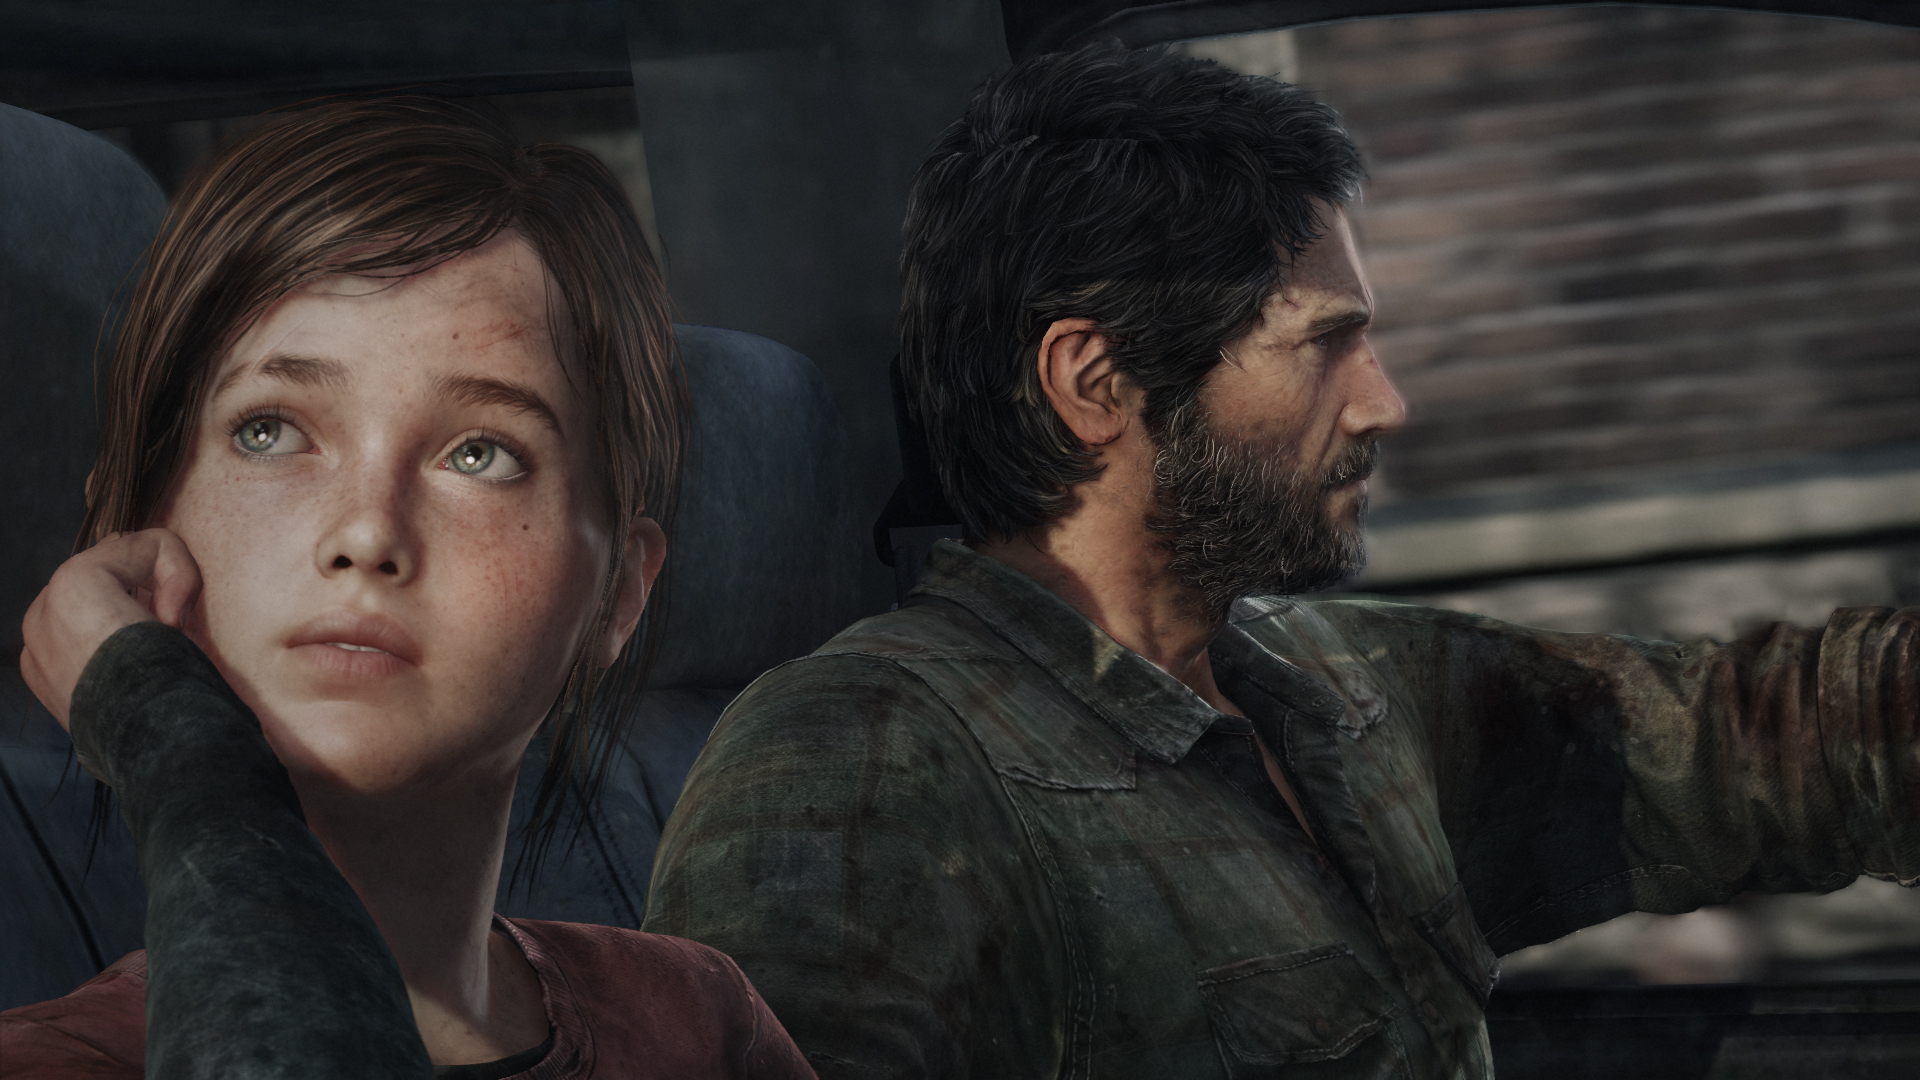 The Last of Us (PS3/PS4): Why I Don't Like AAA Games (Detailed Review)